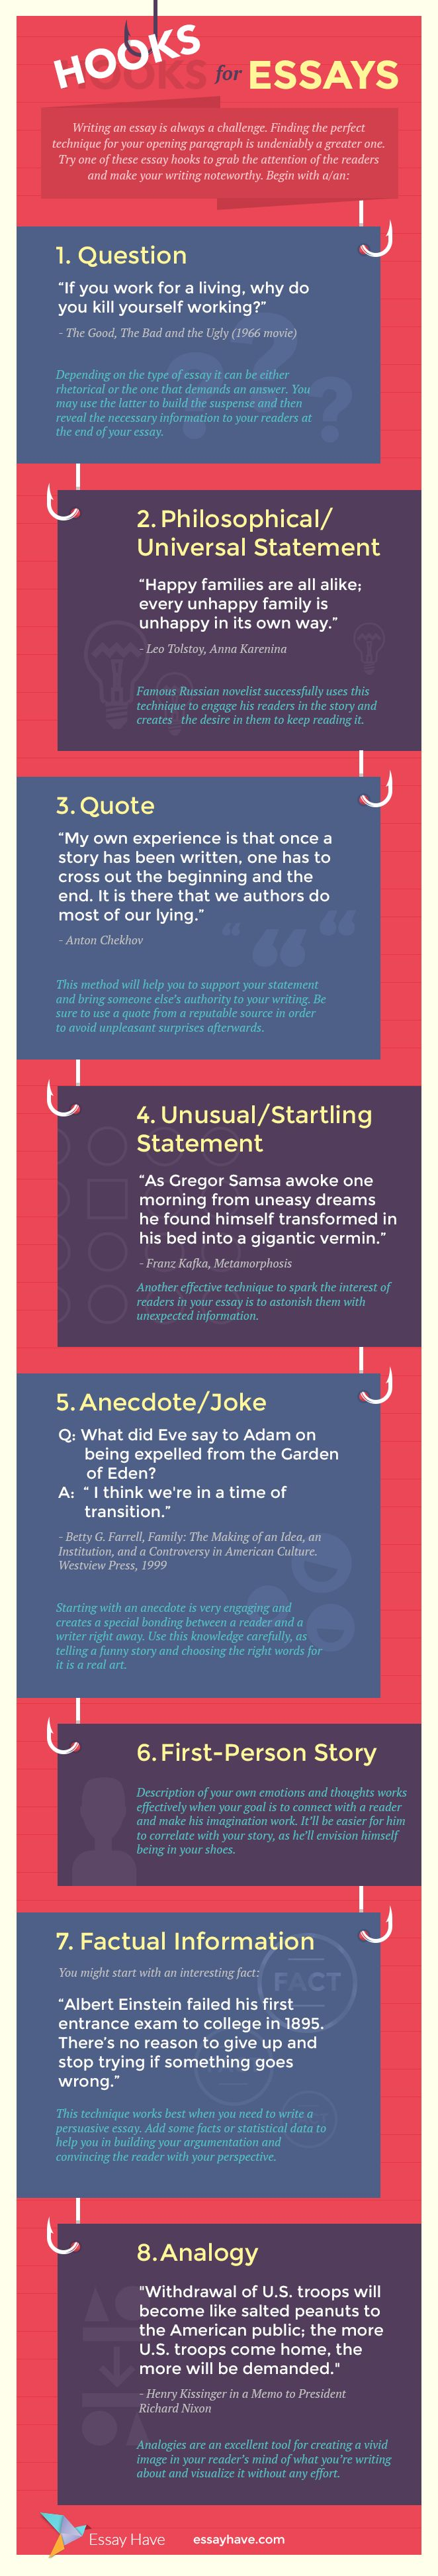 essay structure hook Persuasive essay structure when you're trying to convince your audience of an idea or argument introduction • hook – interesting first sentence.